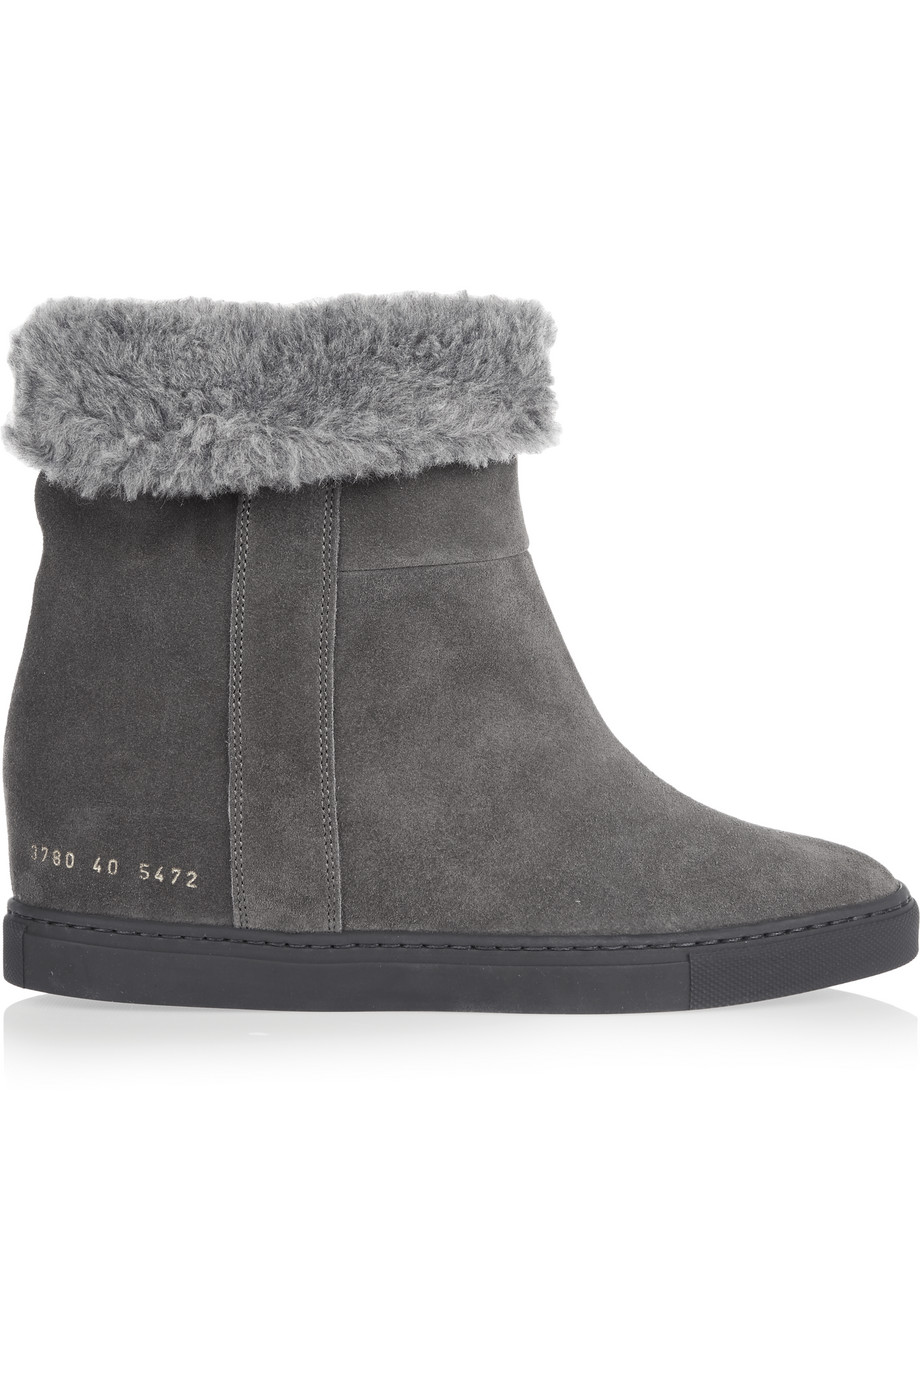 Common Projects Faux Shearling-Lined Suede Wedge Ankle Boots, Dark Gray, Women's US Size: 6.5, Size: 37